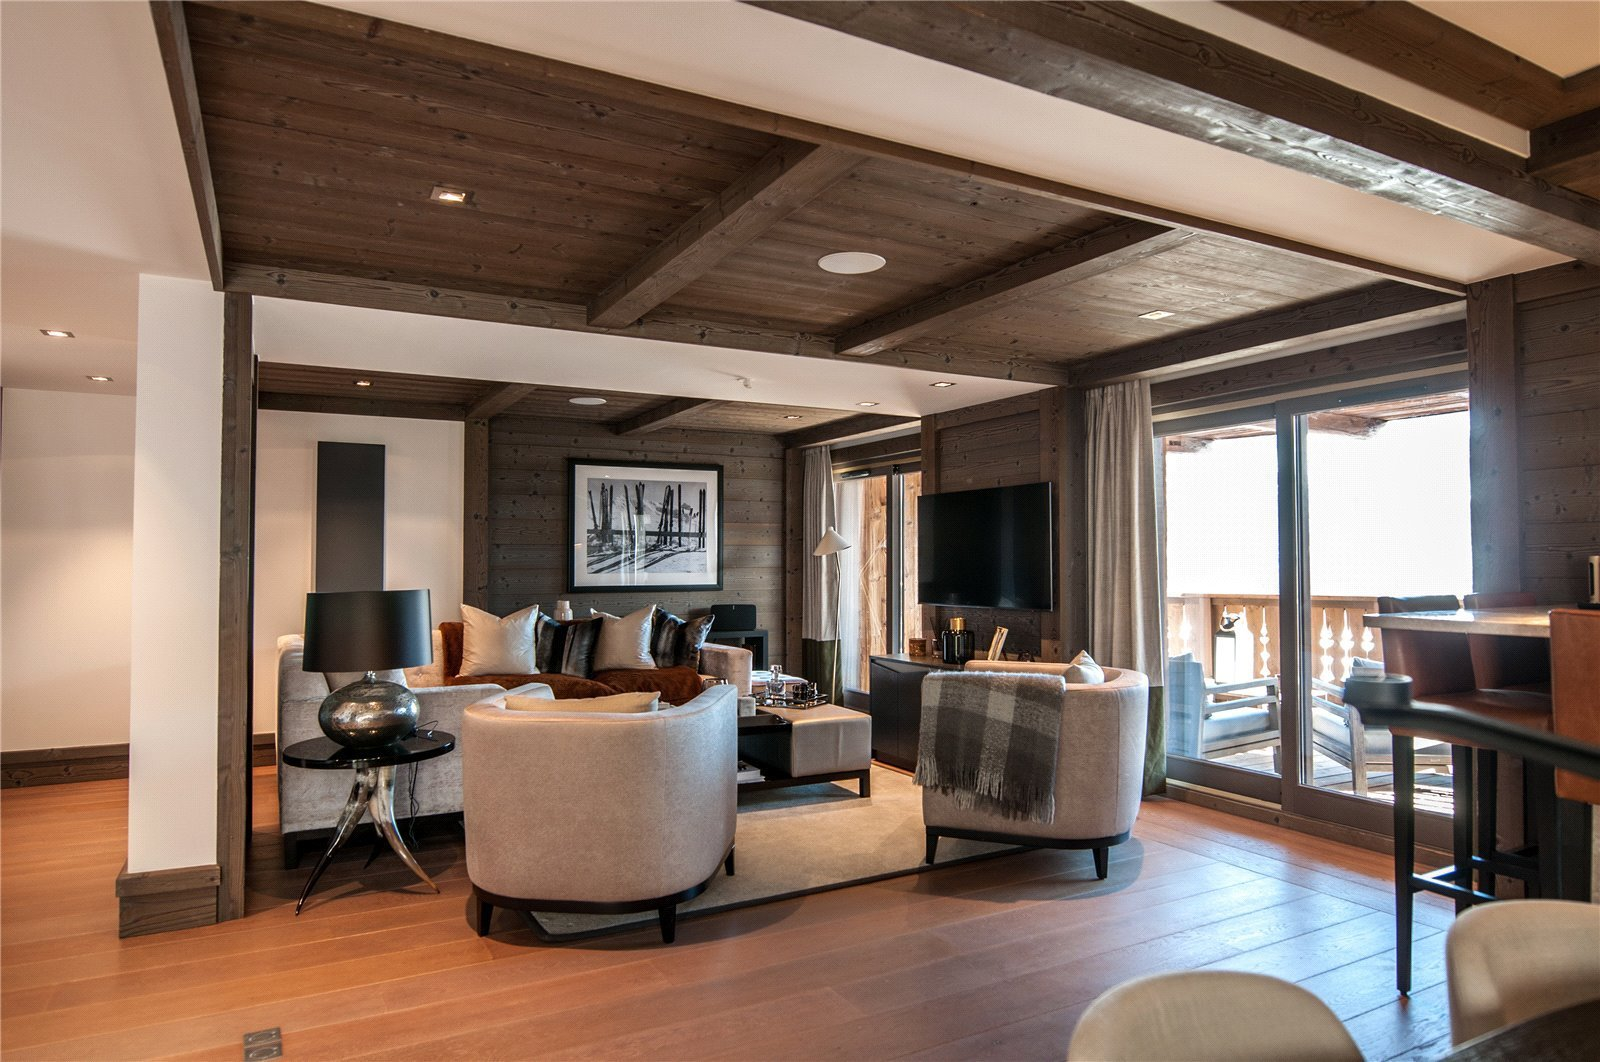 Rental Apartment Courchevel Ideally located for the centre, 3 bedroom apartment within luxury residence Six Senses with spa, pool, gym, concierge.